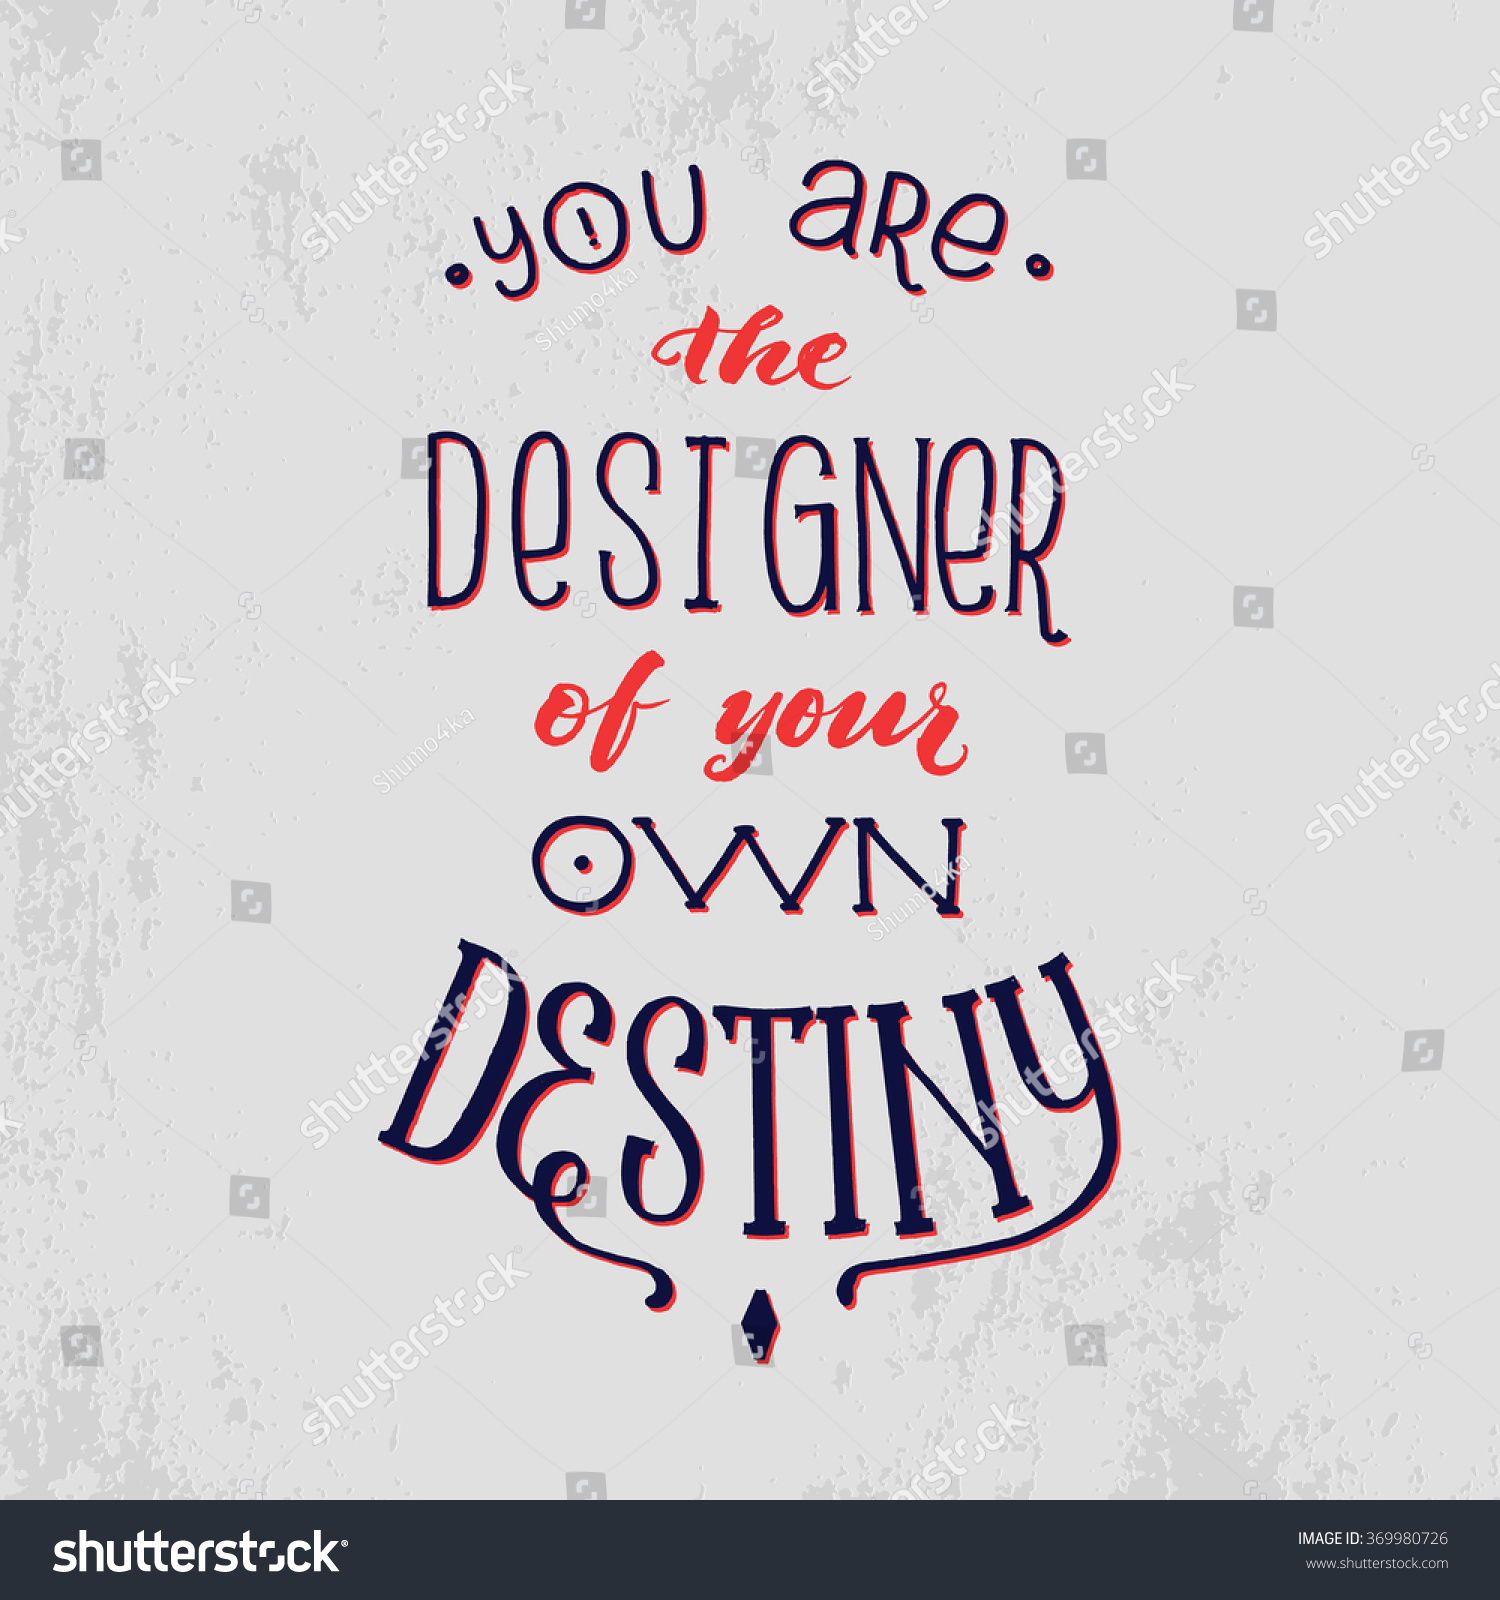 Poster design your own - You Are The Designer Of Your Own Destiny Motivation Hand Drawn Poster Vector Card